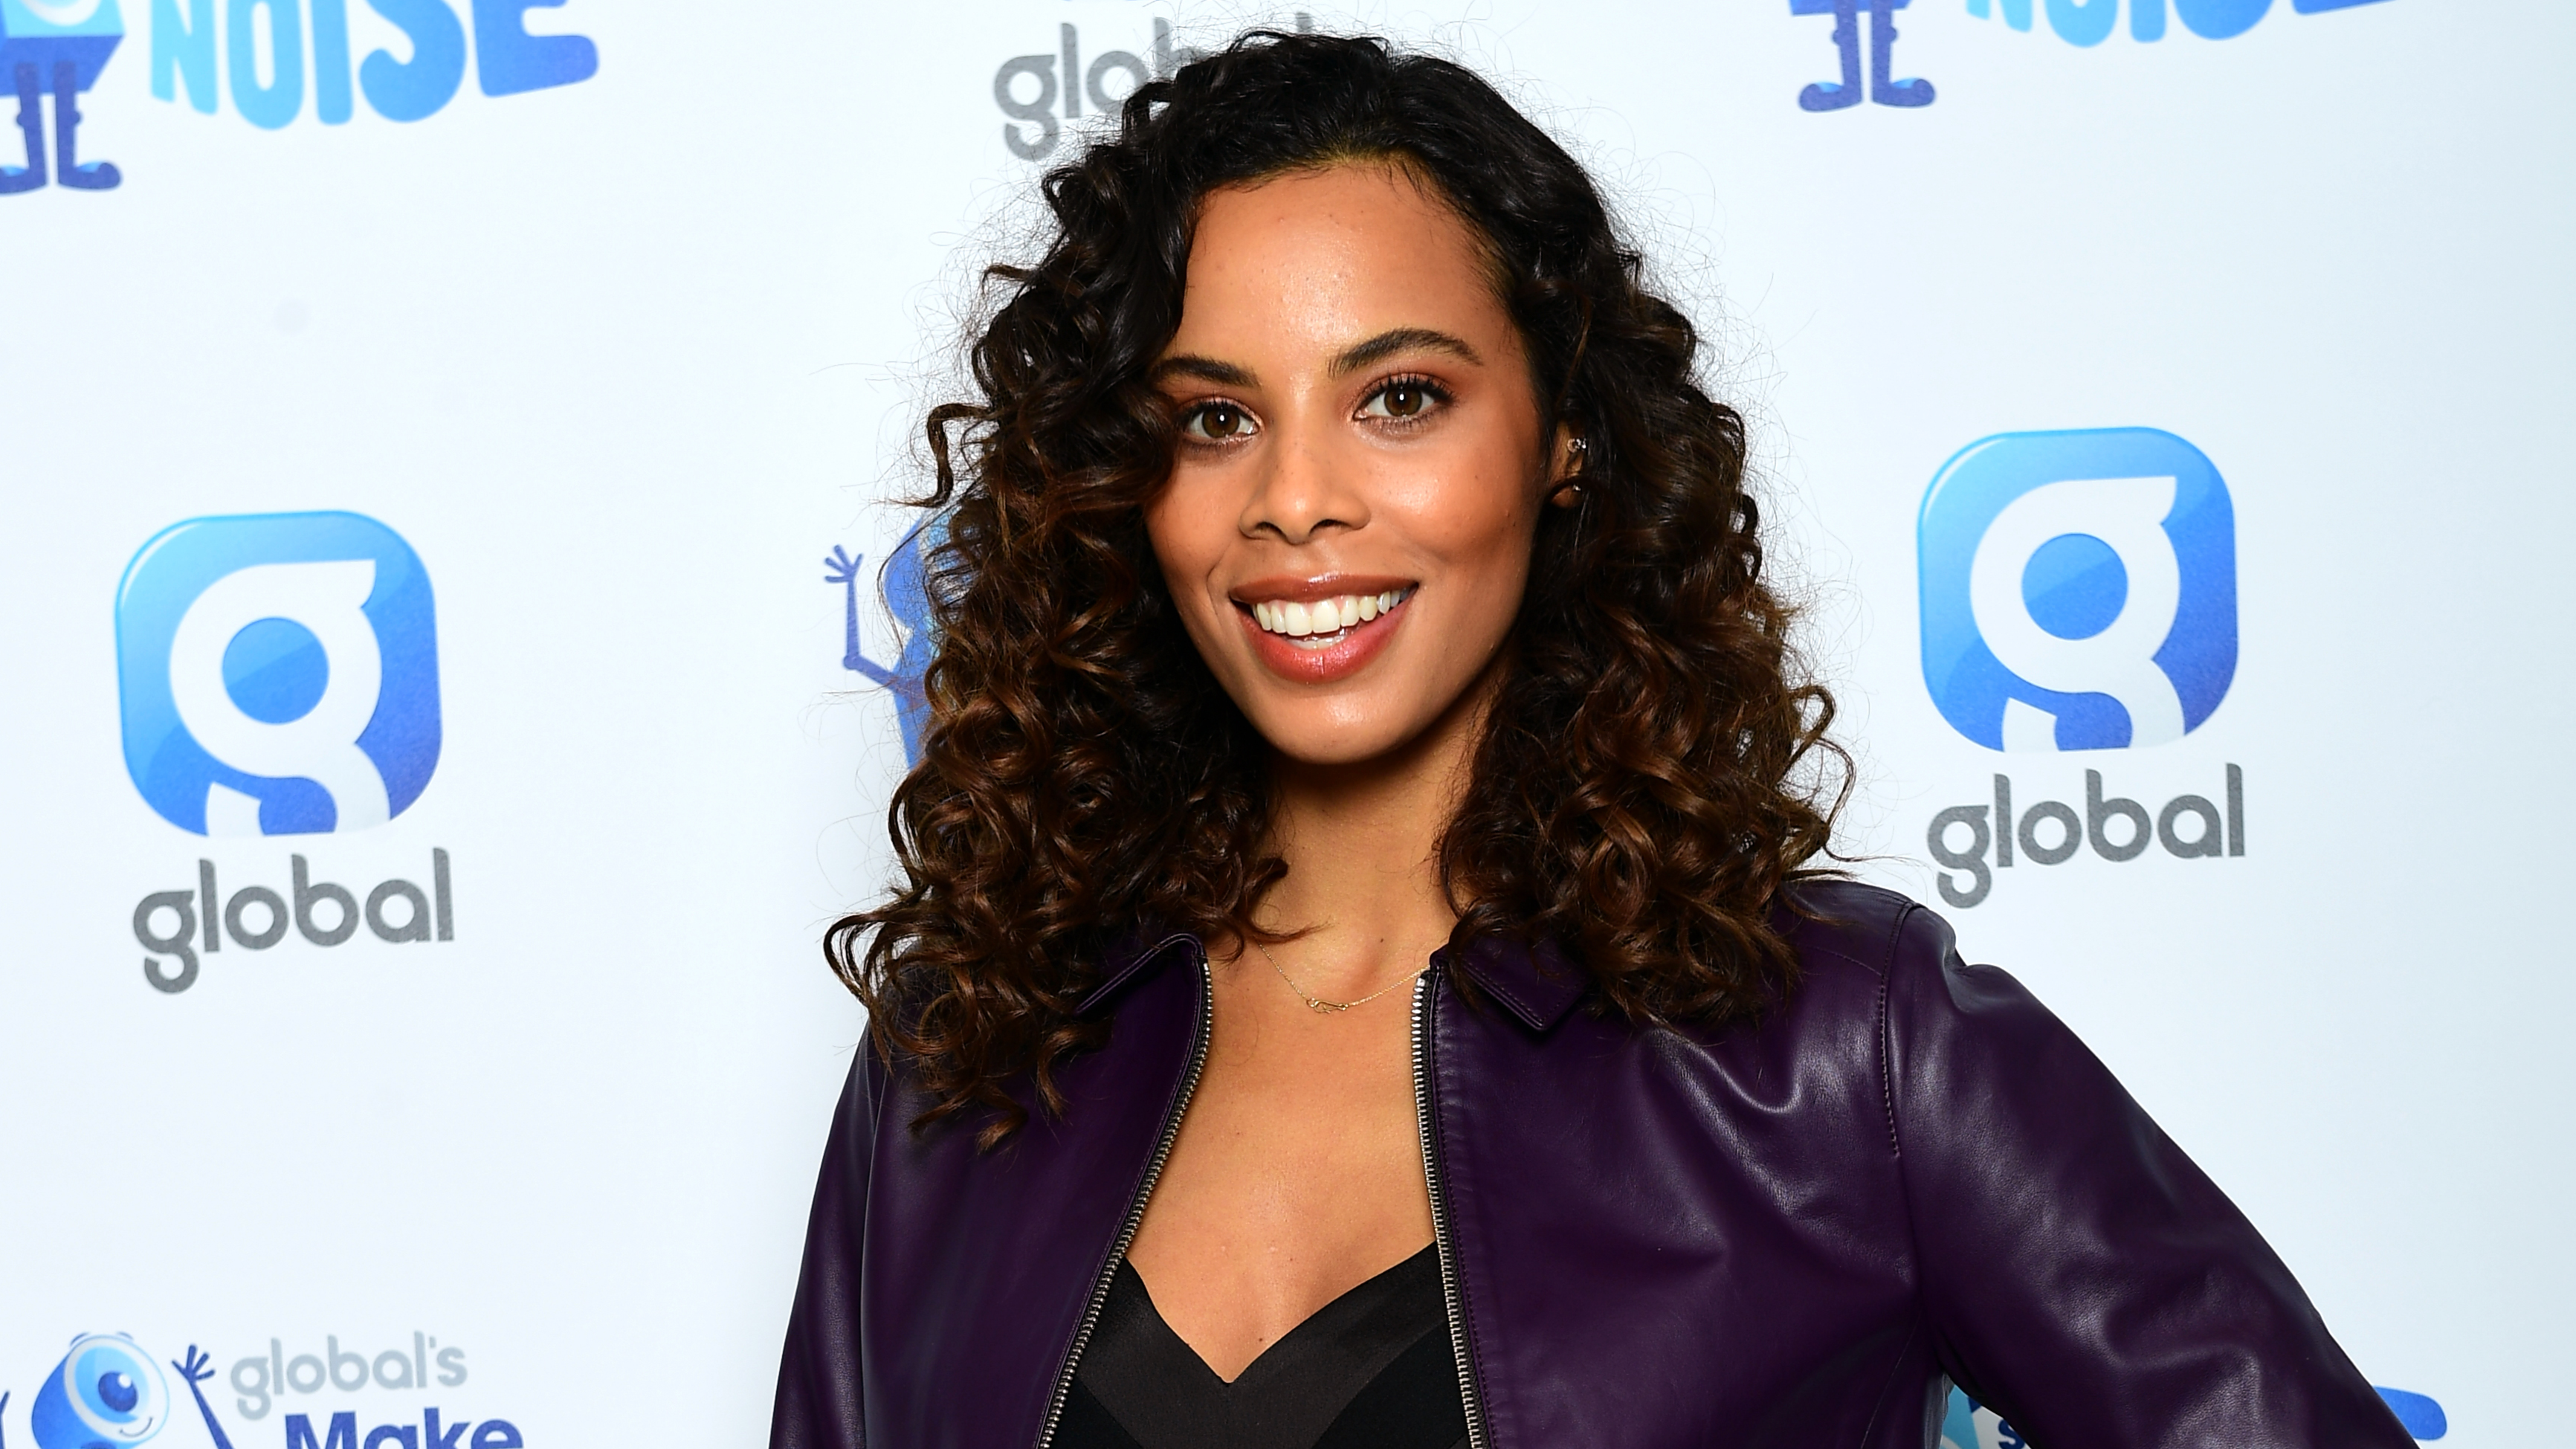 Rochelle Humes 'To Replace' Holly Willoughby On This Morning During I'm A Celeb Stint